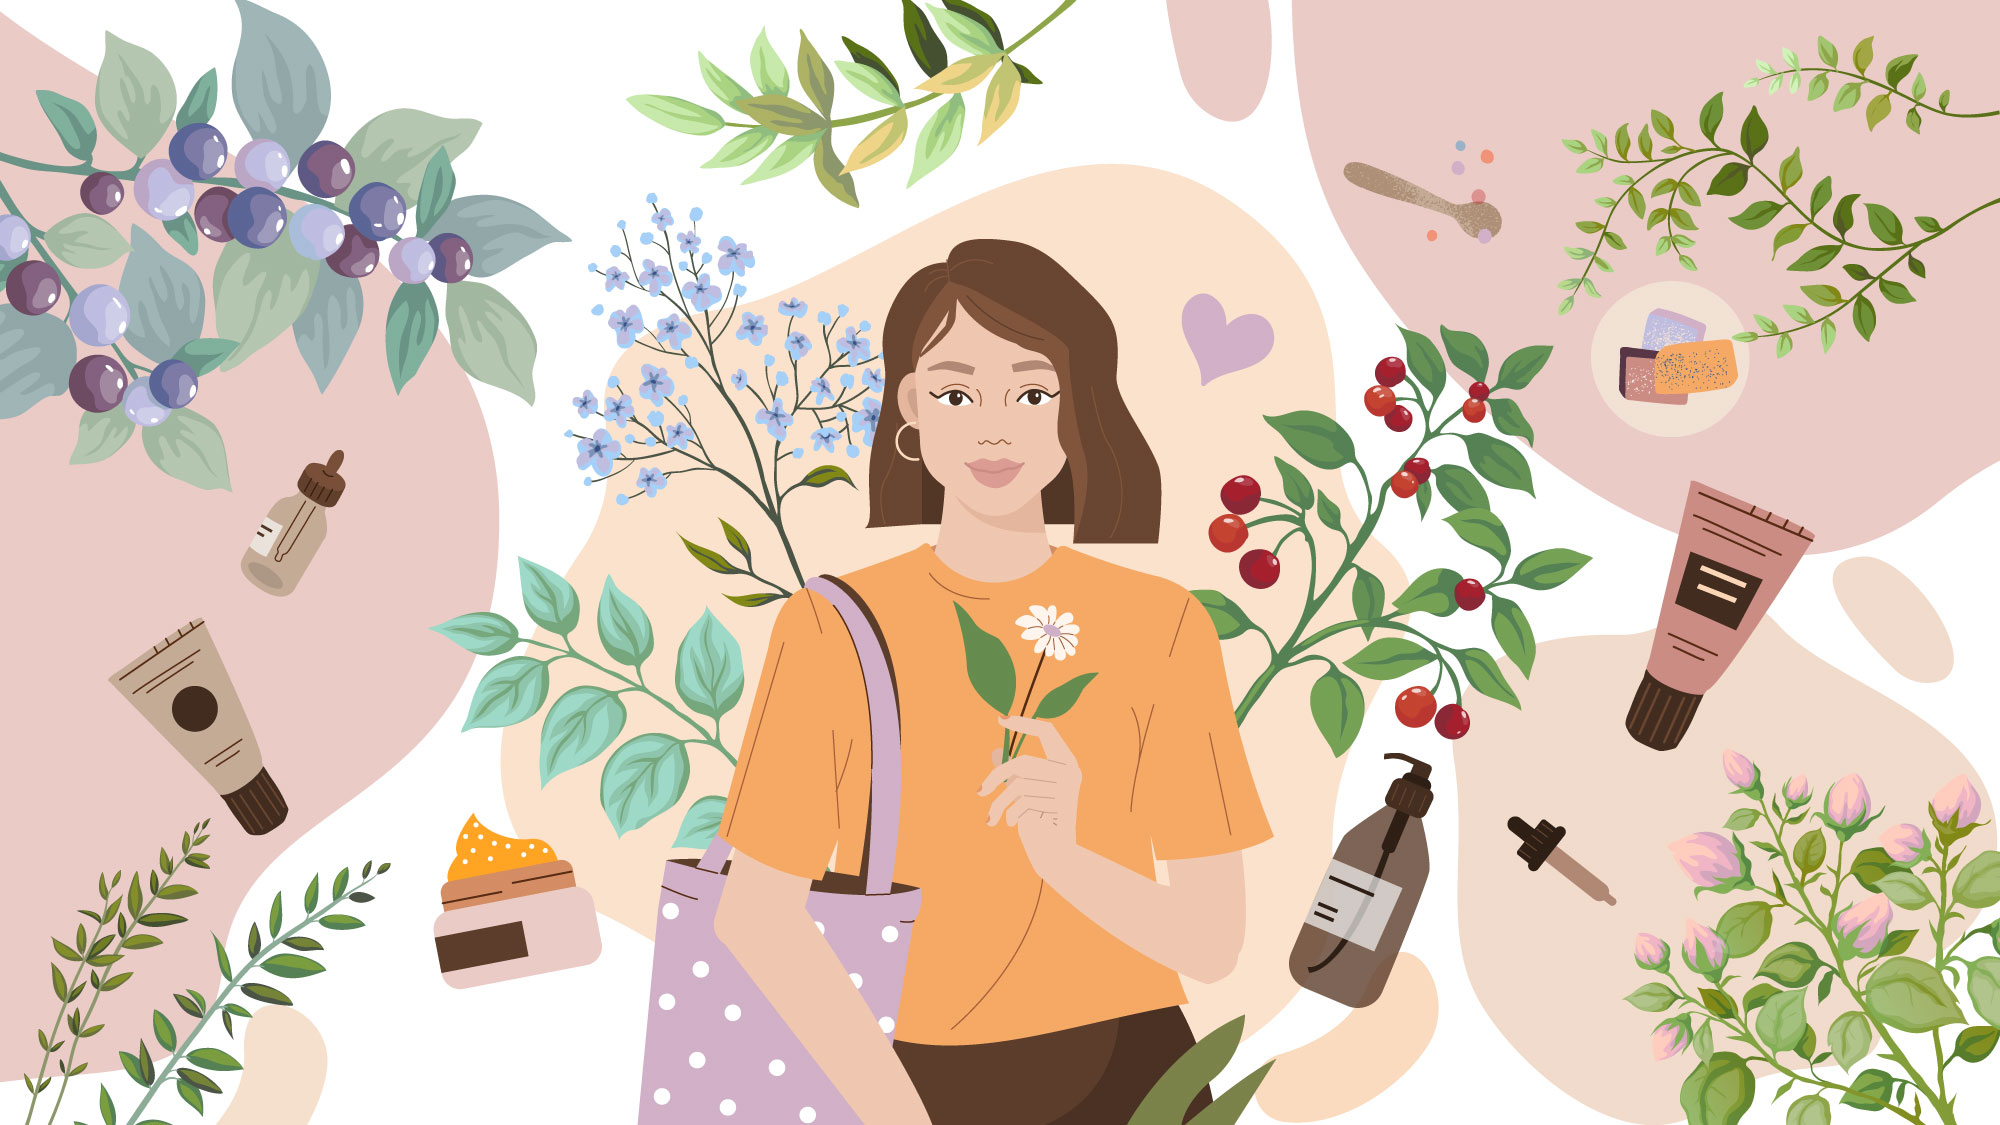 collage of woman and beauty products and nature